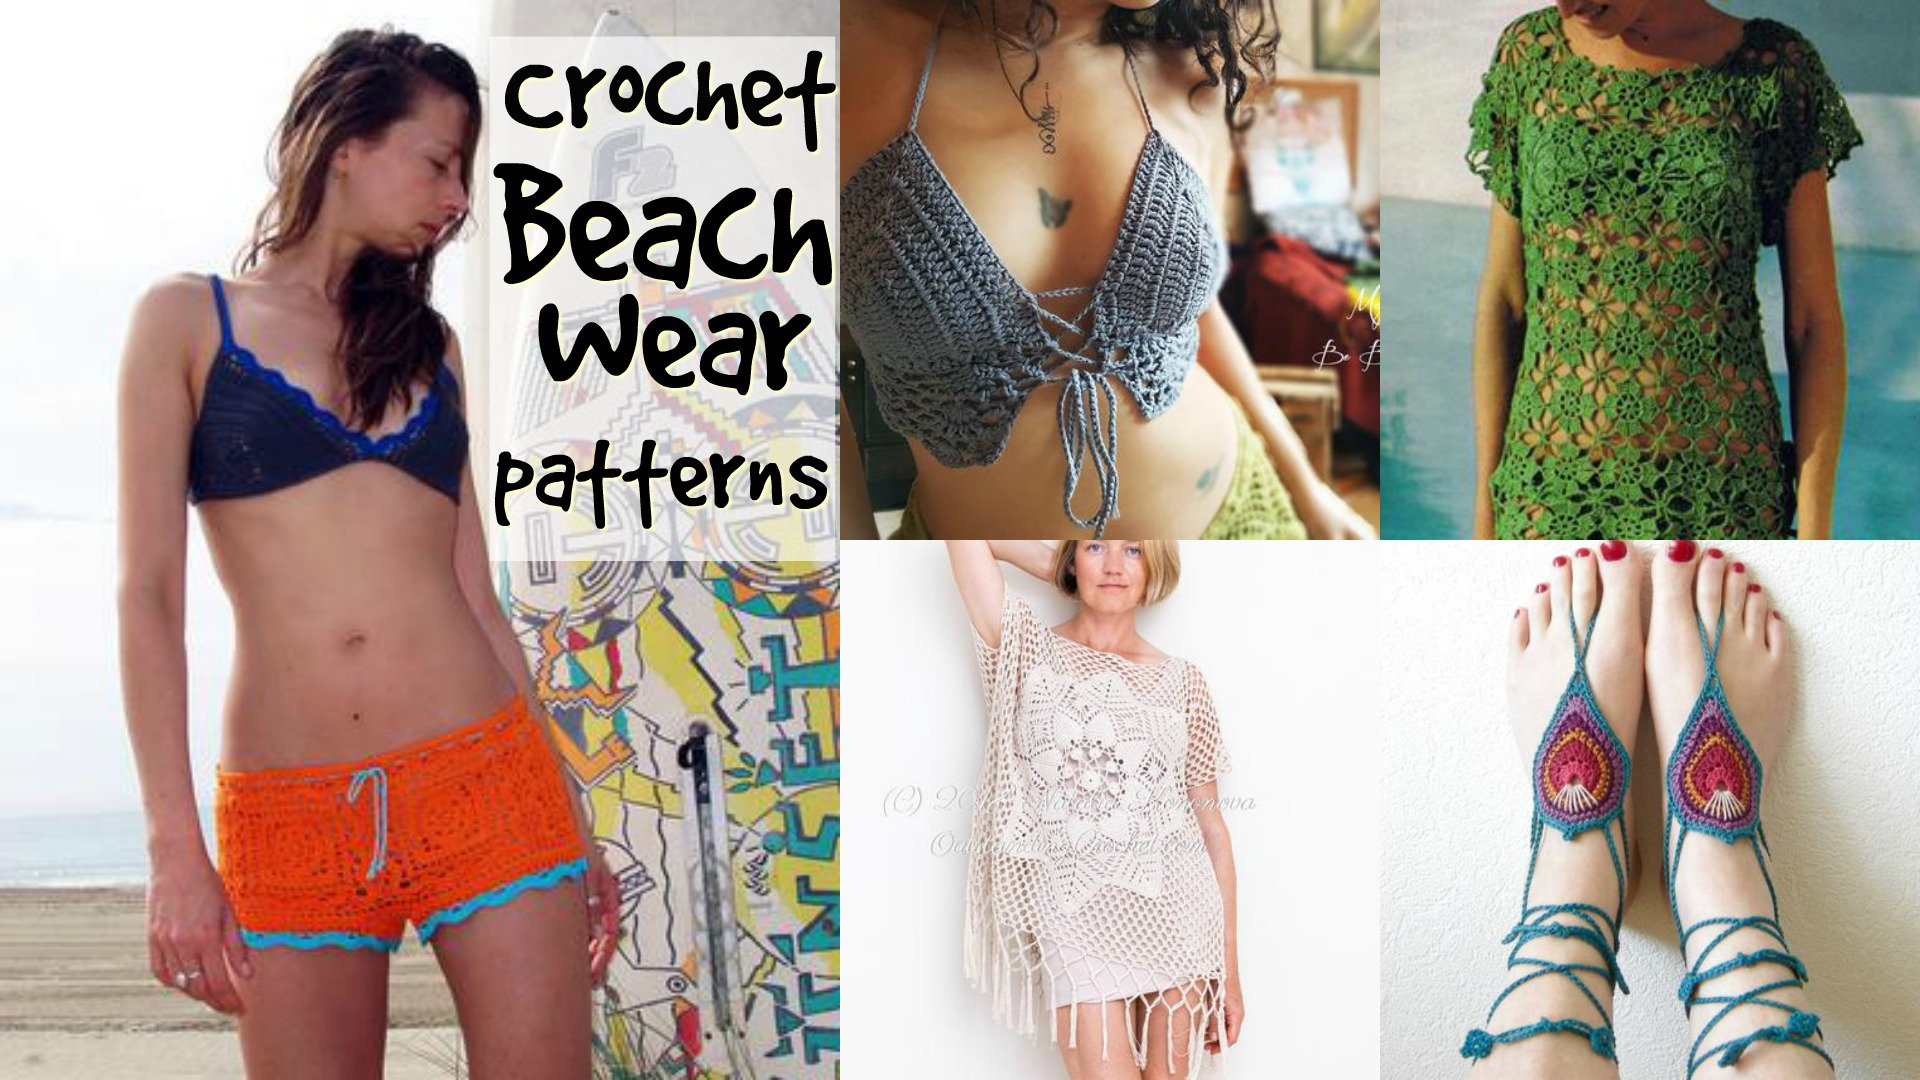 Great collection of crochet patterns for beach wear: cover ups, shorts, halter tops, bikinis and even these cool barefoot sandals! #craftevangelist #patternroundup